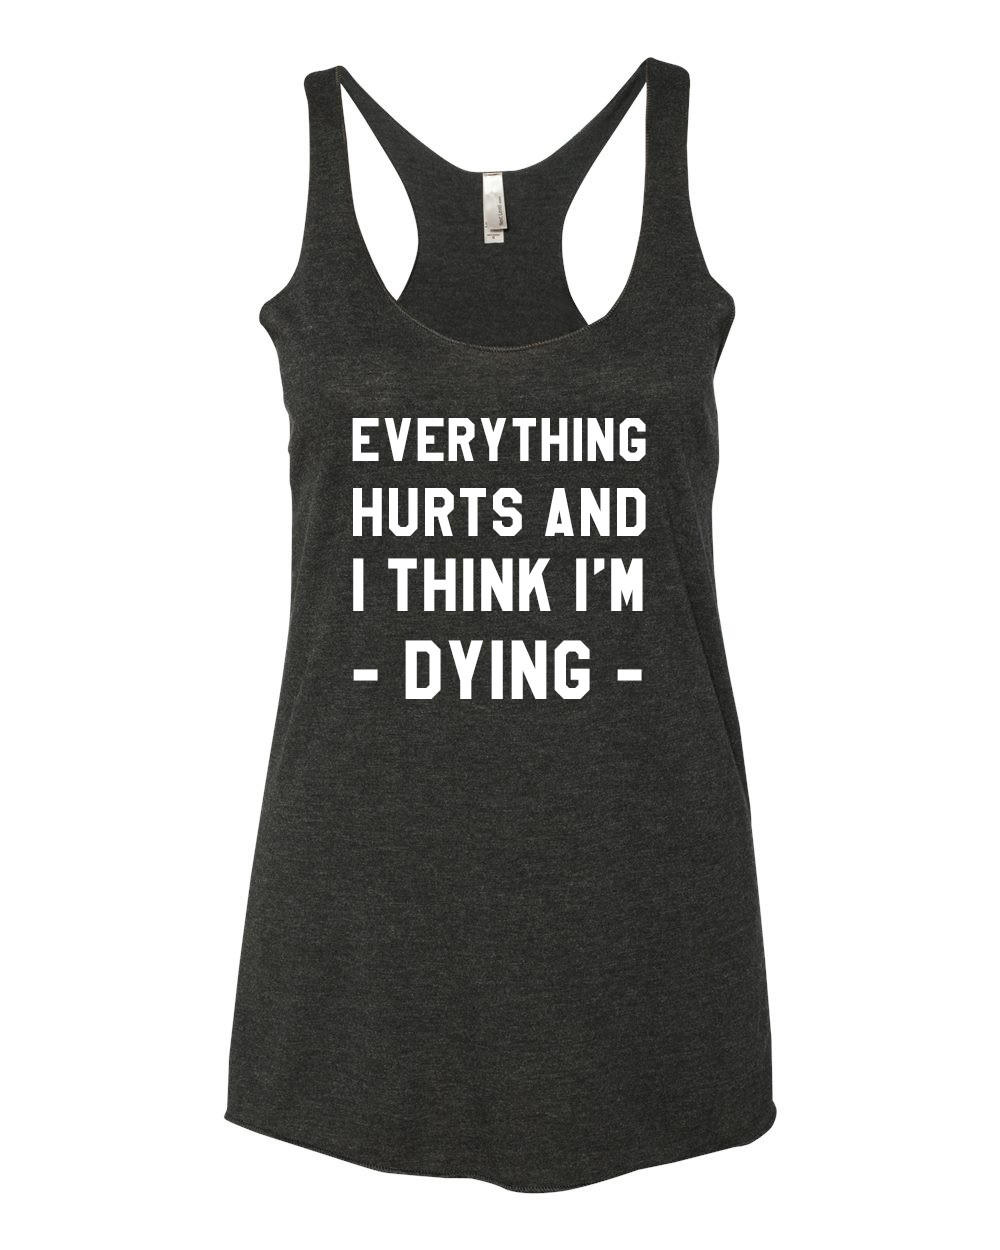 f6e6909ed76d Everything Hurts And I Think I m Dying - from Double Dog Shop